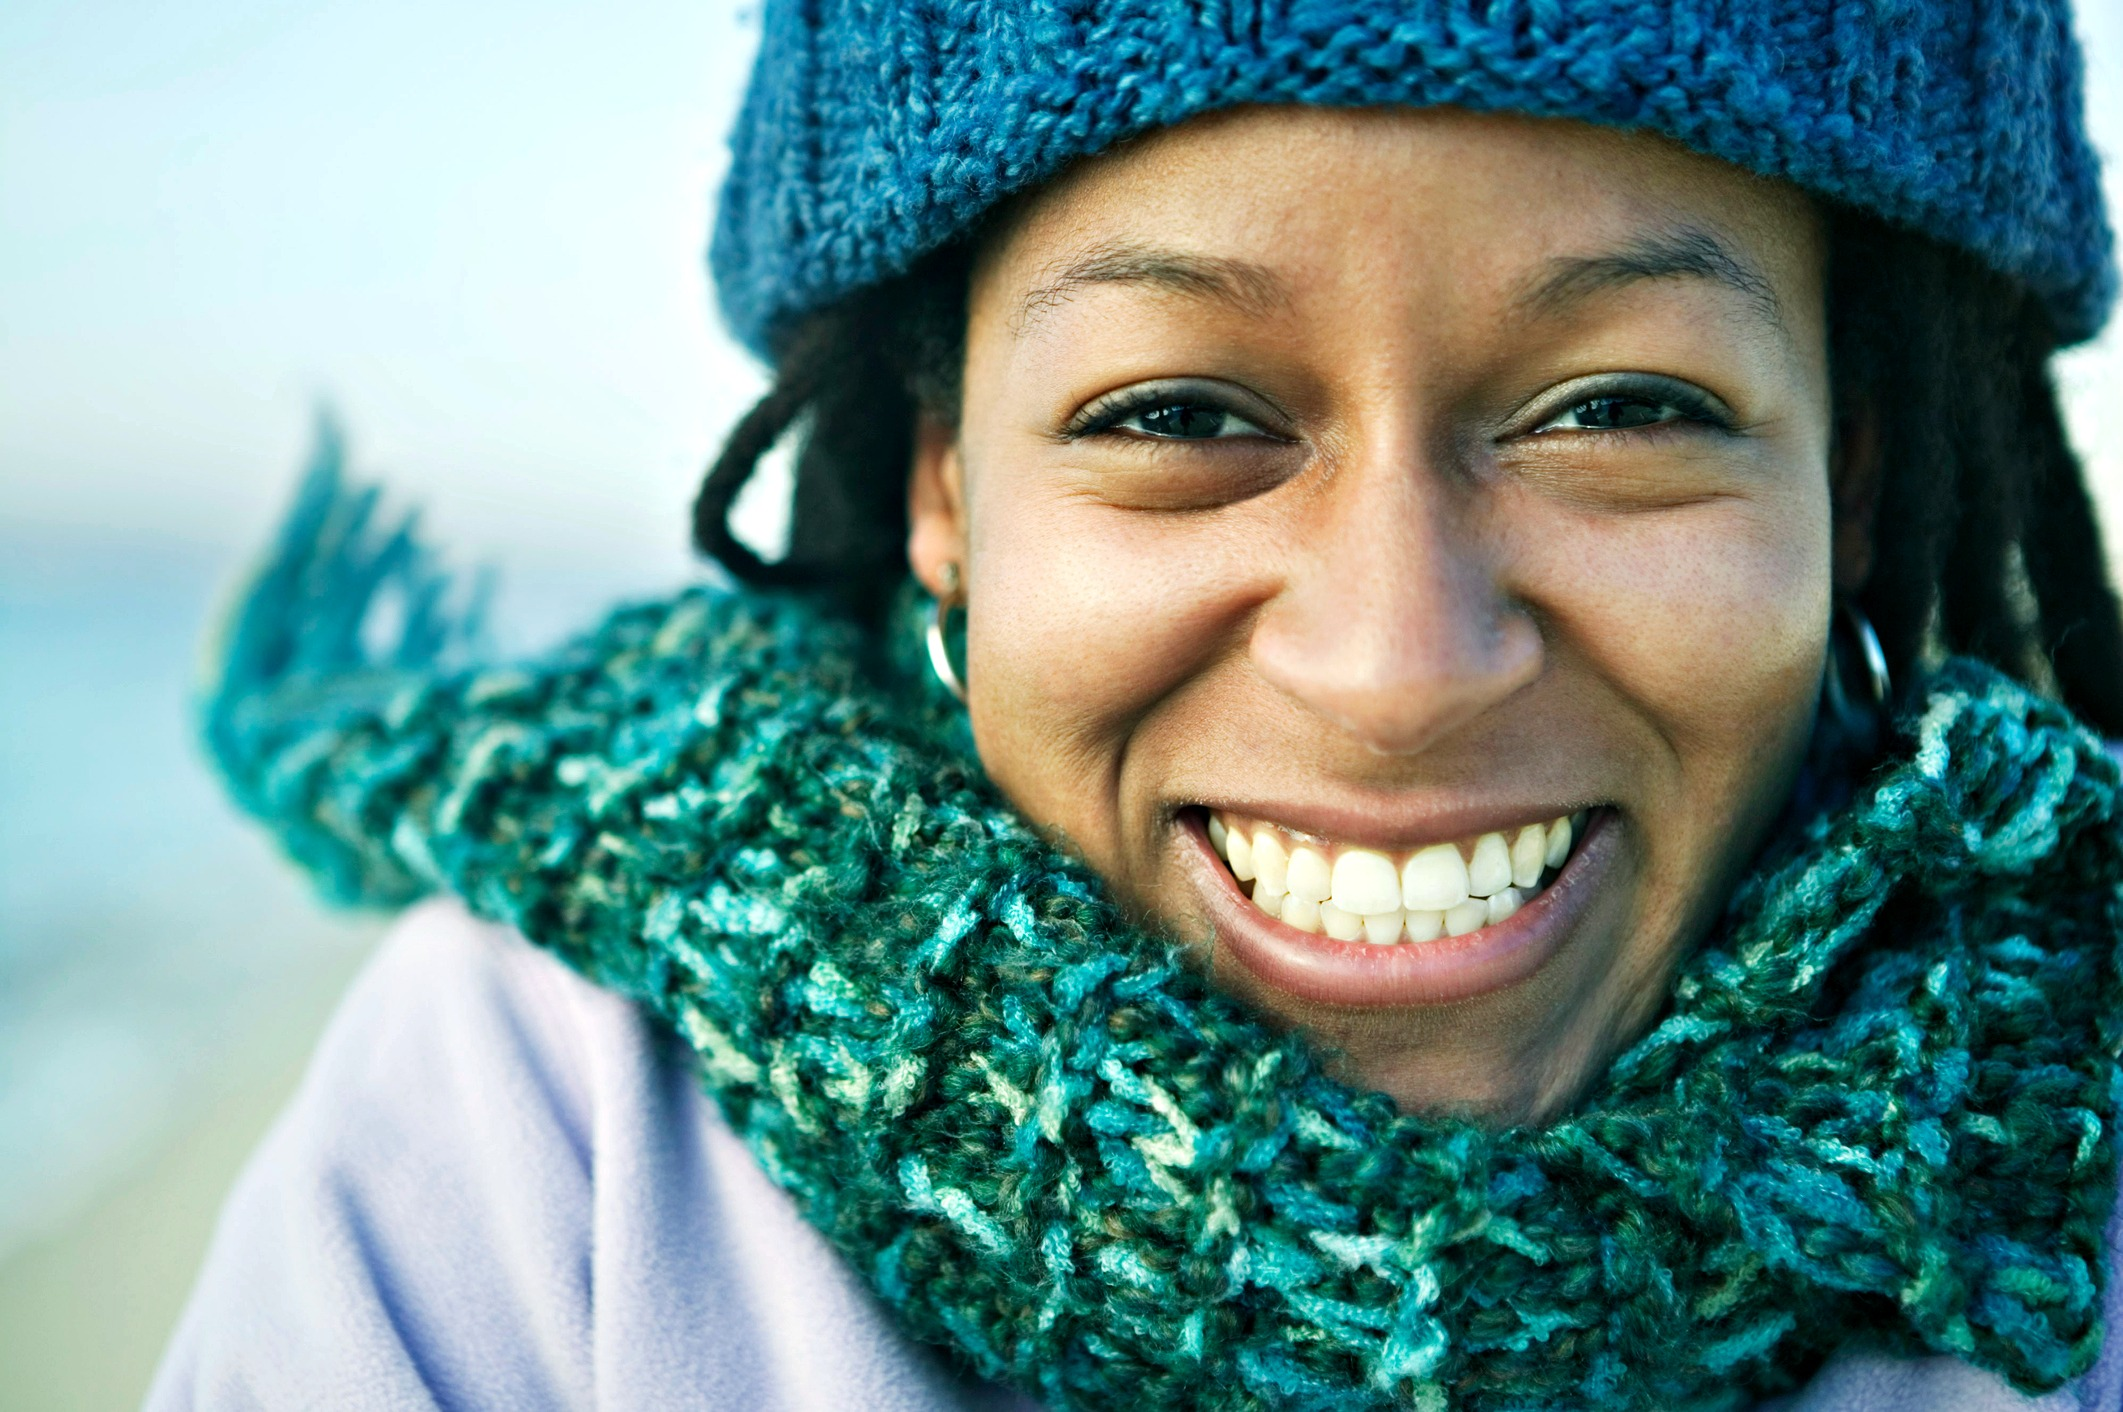 Headshot of a smiling face woman of color feeling good. She's wearing a blue knitted winter hat and a sea-green knitted scarf while outside. Counseling creates possibility.